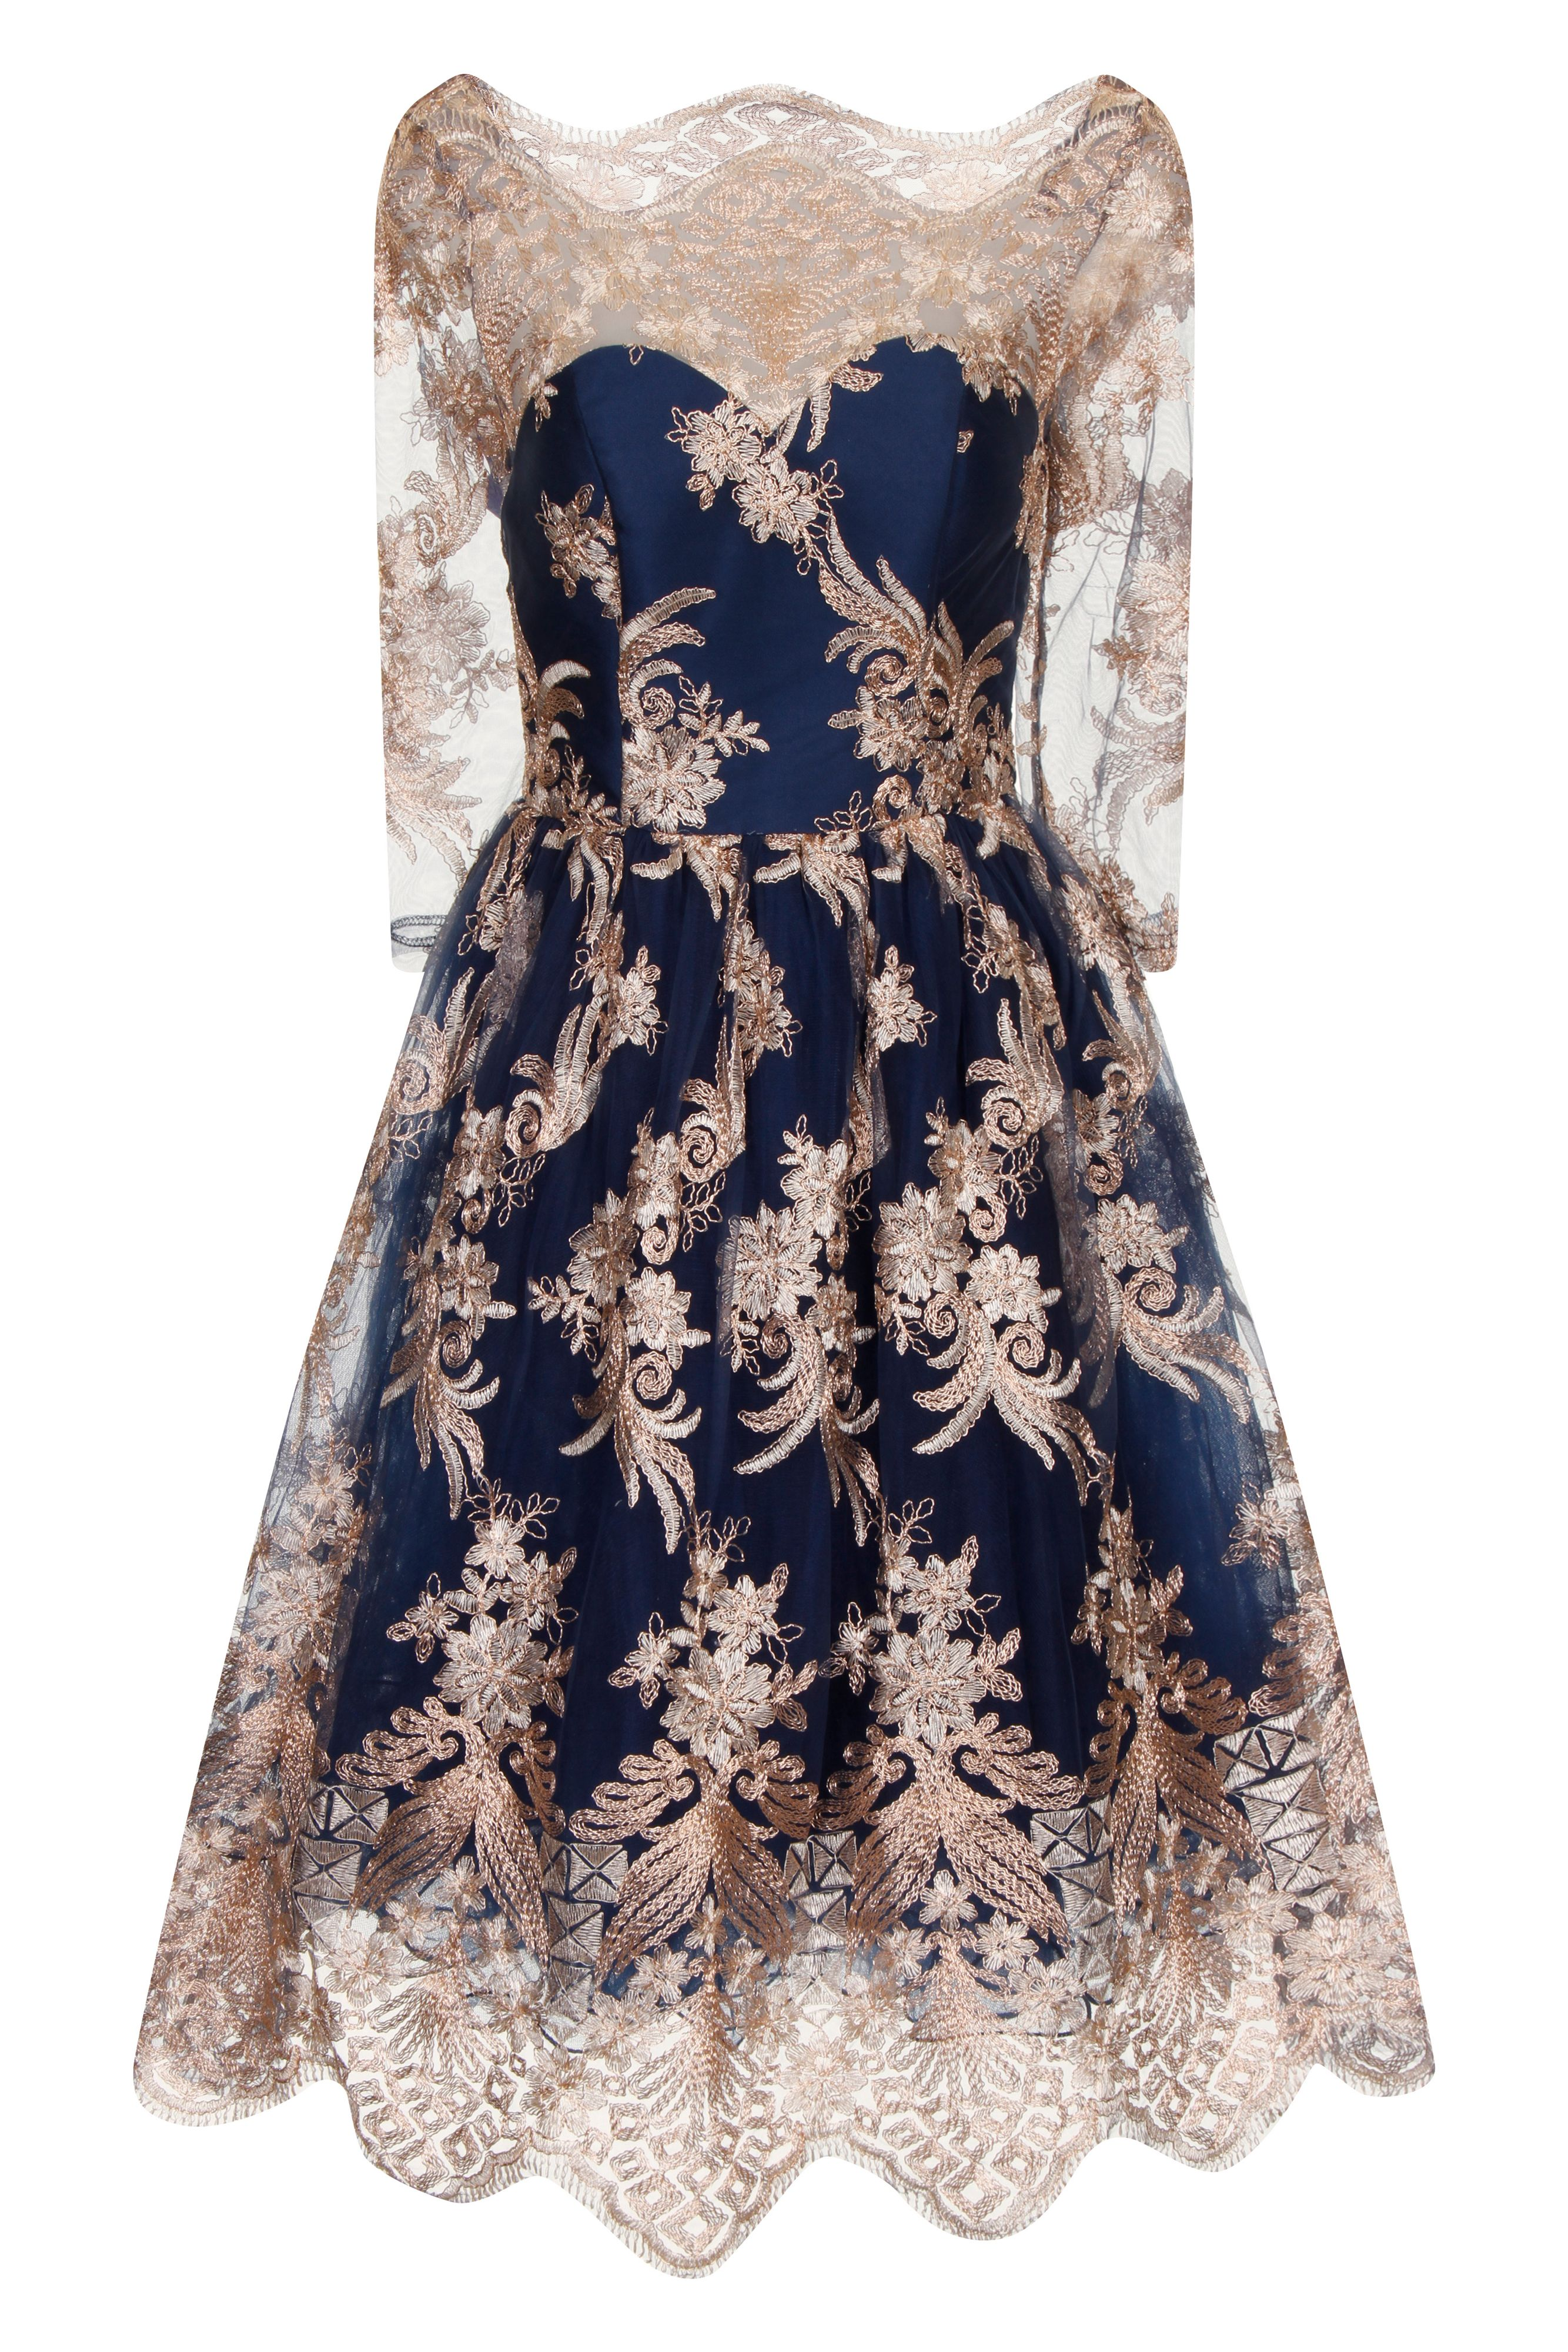 Chi Chi London Metallic 34 Baroque Style Tea Dress Navy £79.99 AT vintagedancer.com